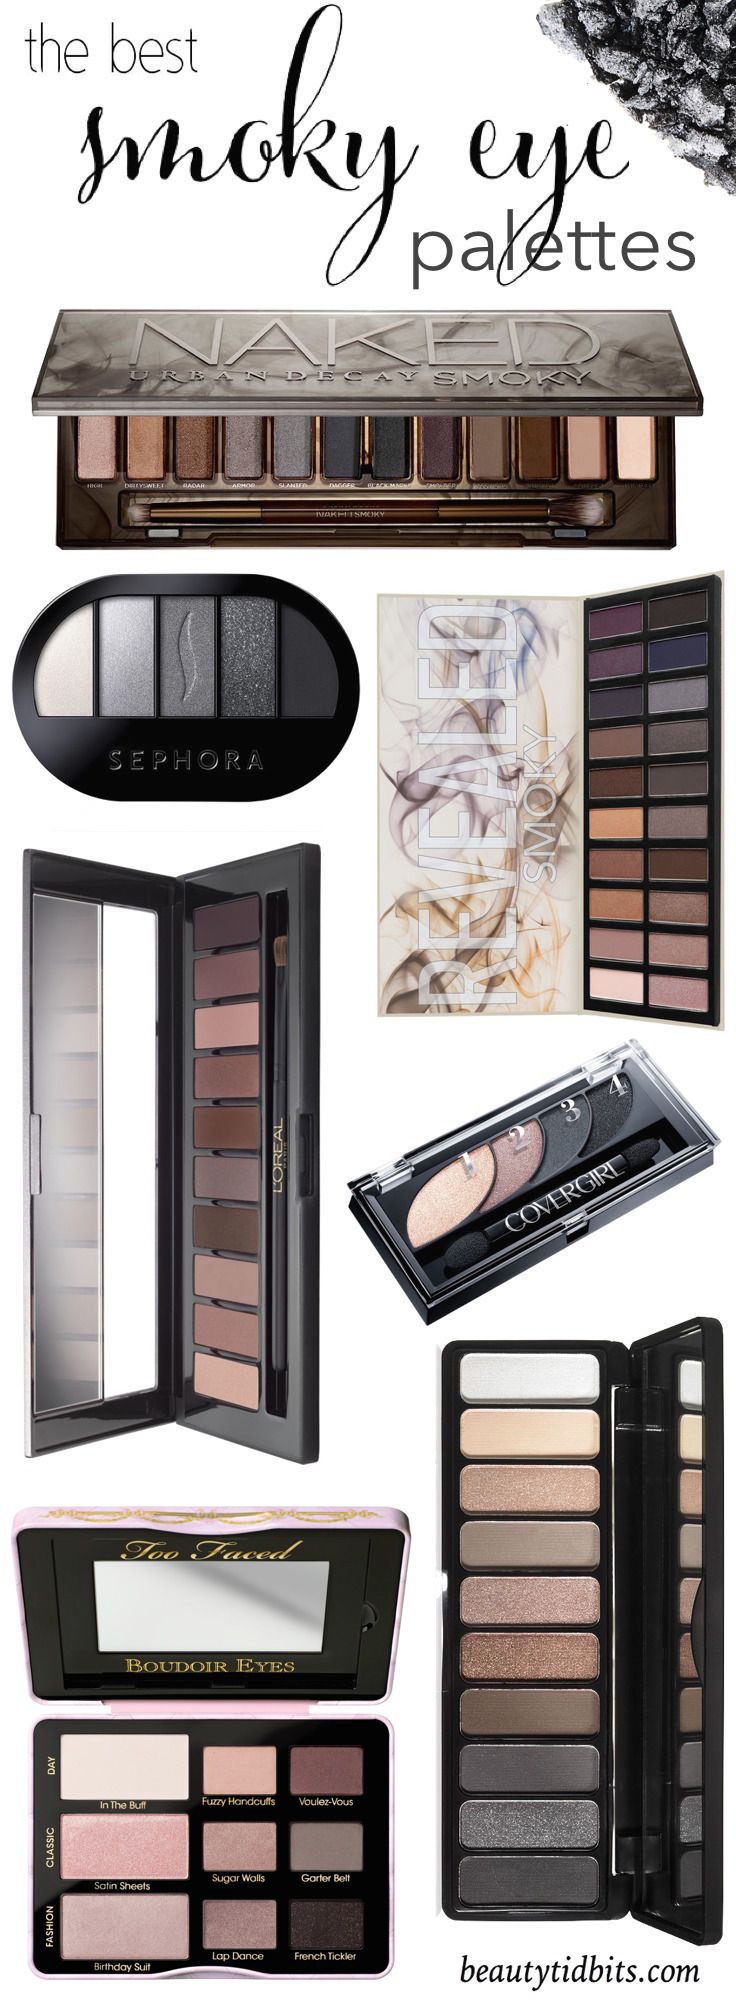 The Best Smoky Eyeshadow Palettes For Every Budget Best Eyeshadow Palette Smoky Eyeshadow Eyeshadow